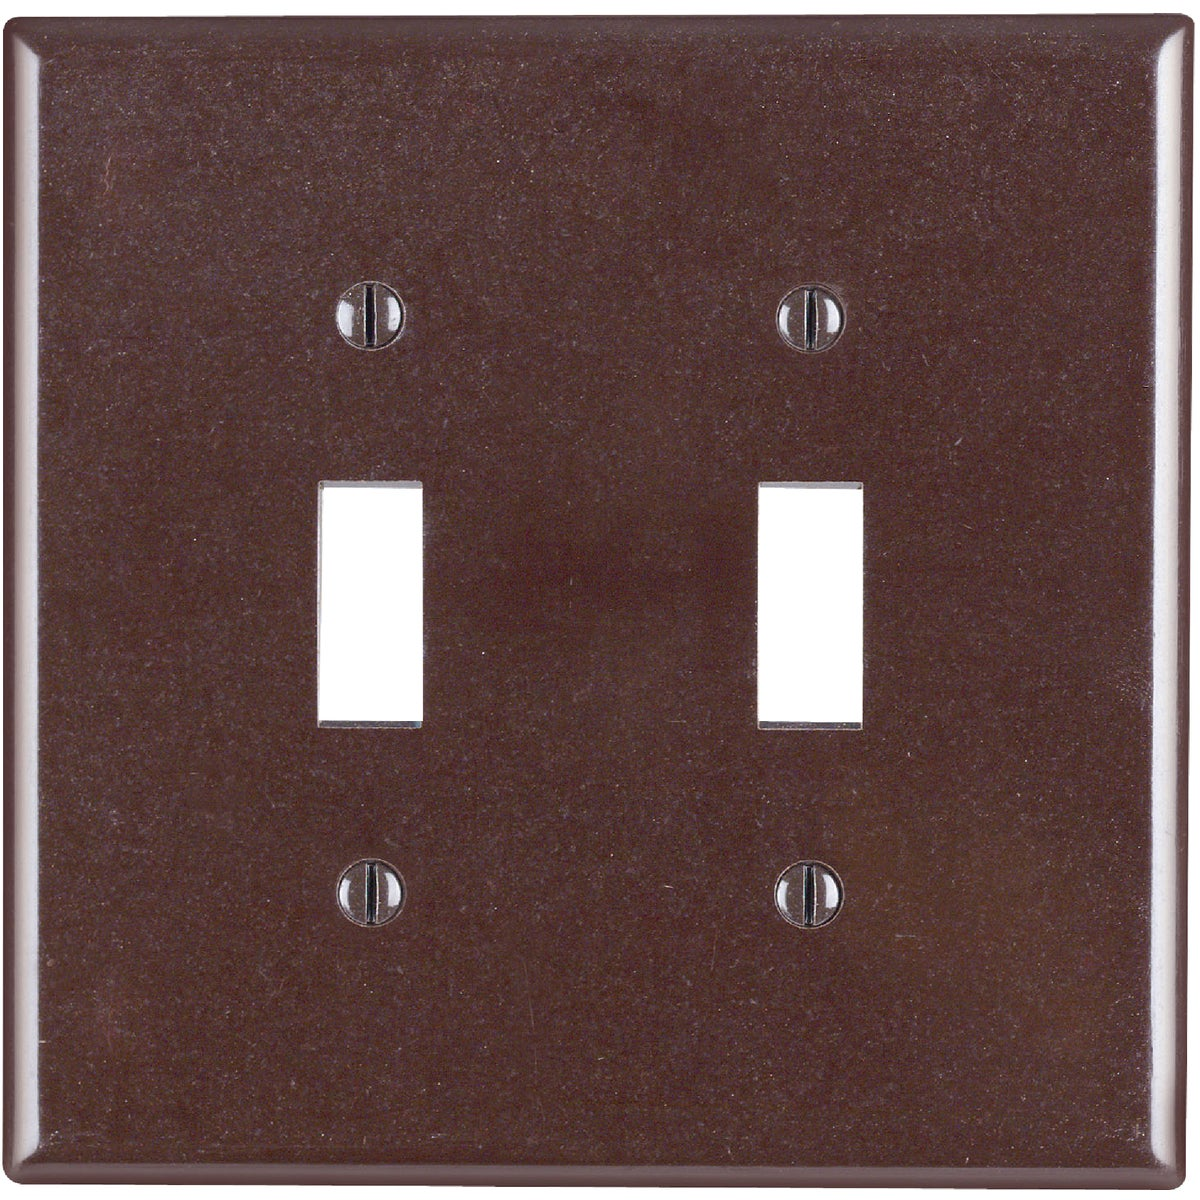 BRN 2-TOGGLE WALL PLATE - 80509 by Leviton Mfg Co